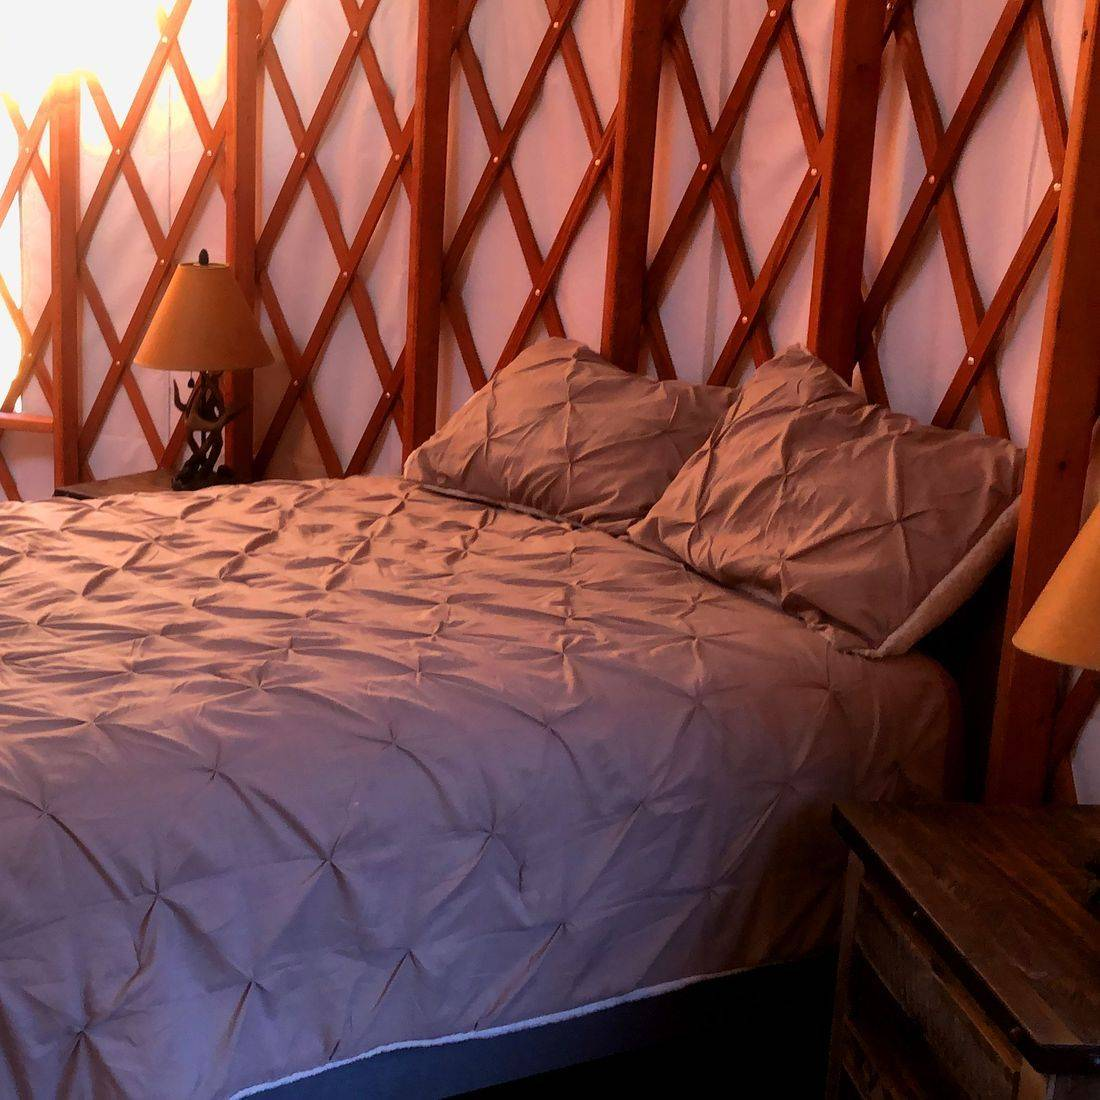 King Sized Bed in Yurt